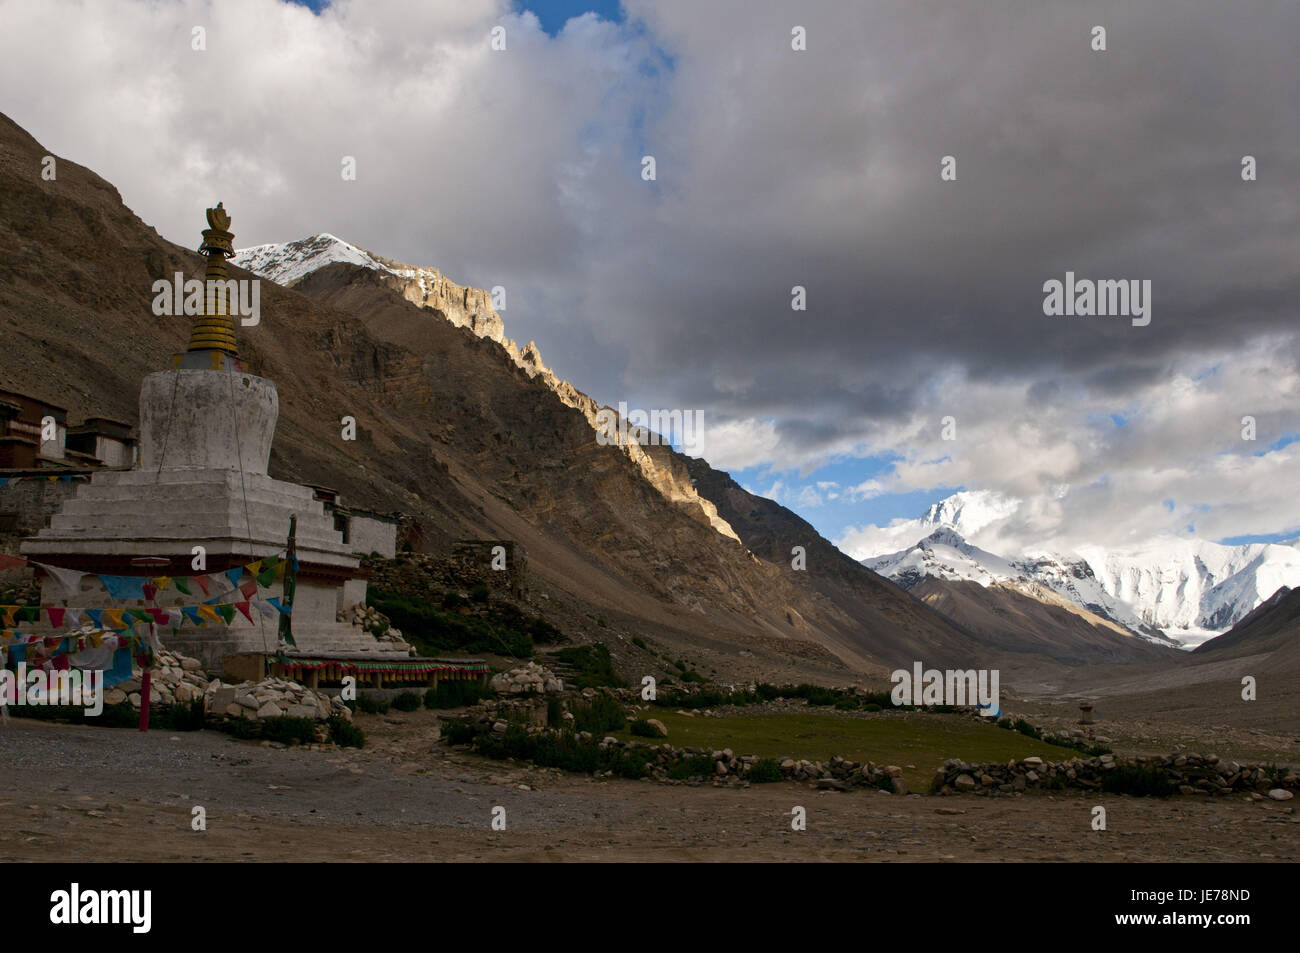 Cloister of Rongbuk at the foot of the Mount Everest, Tibet, Asia, - Stock Image